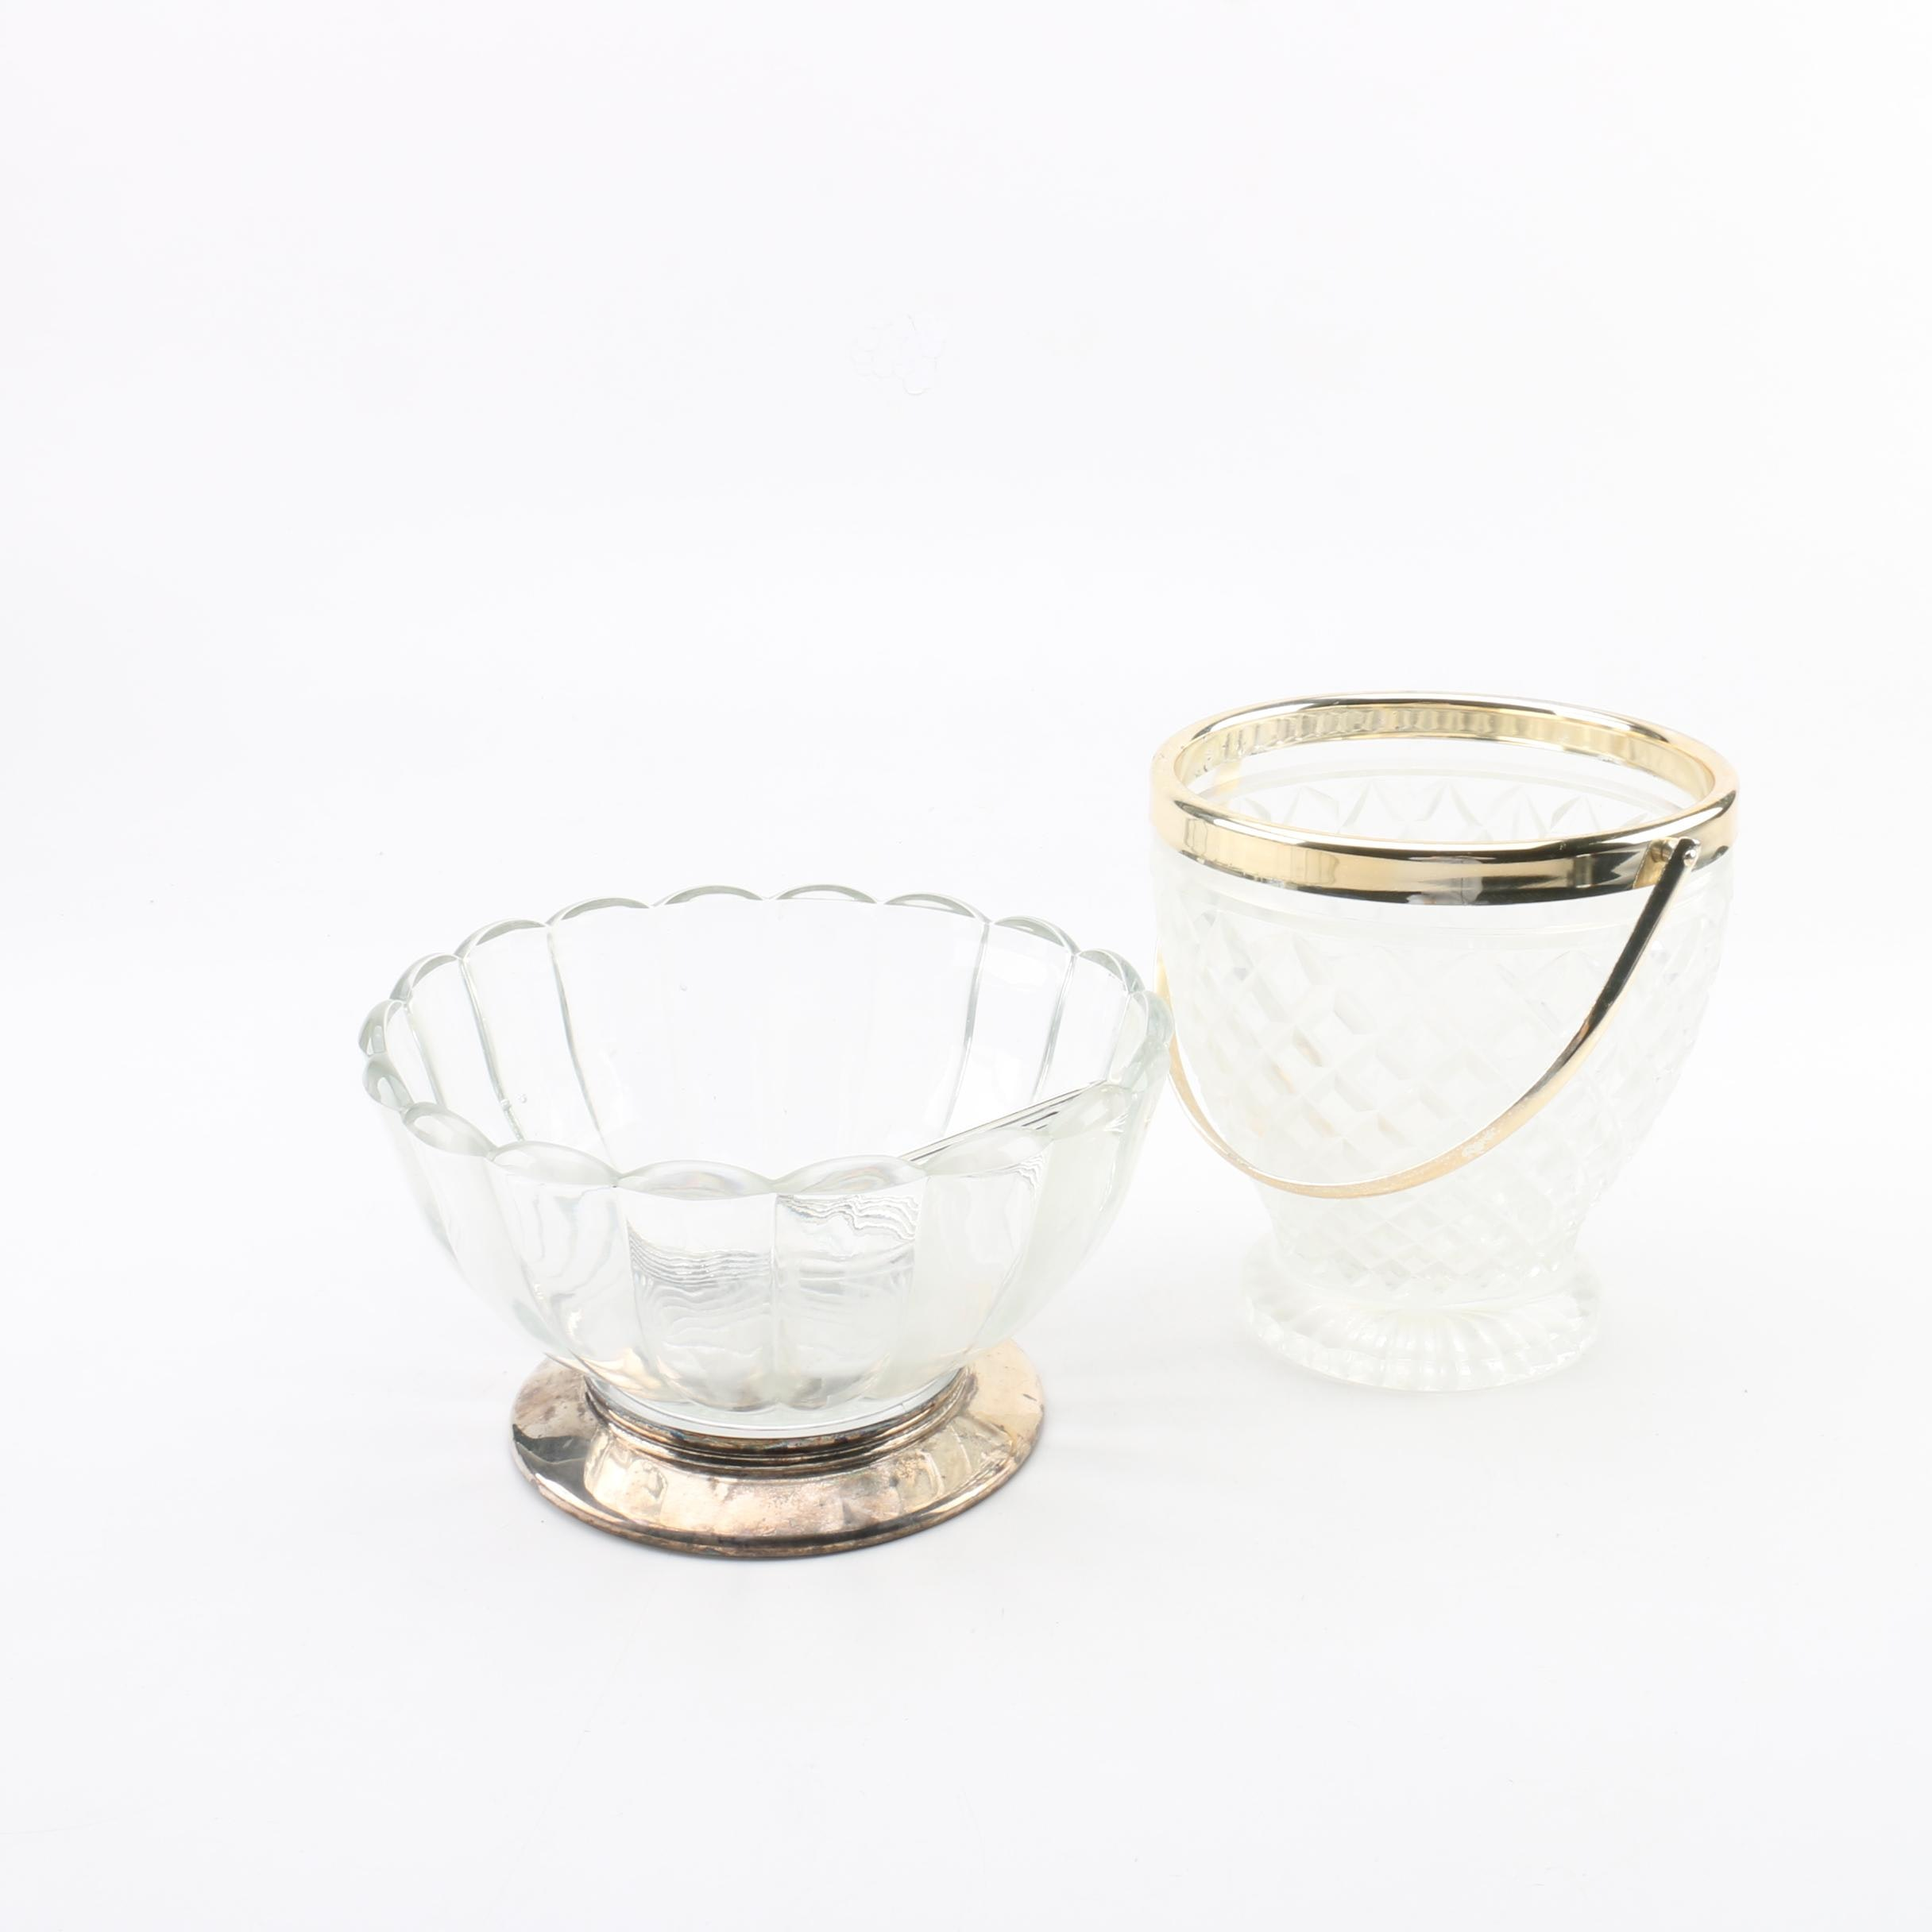 English Silver Plate and Glass Bowl with Glass and Metal Ice Bucket